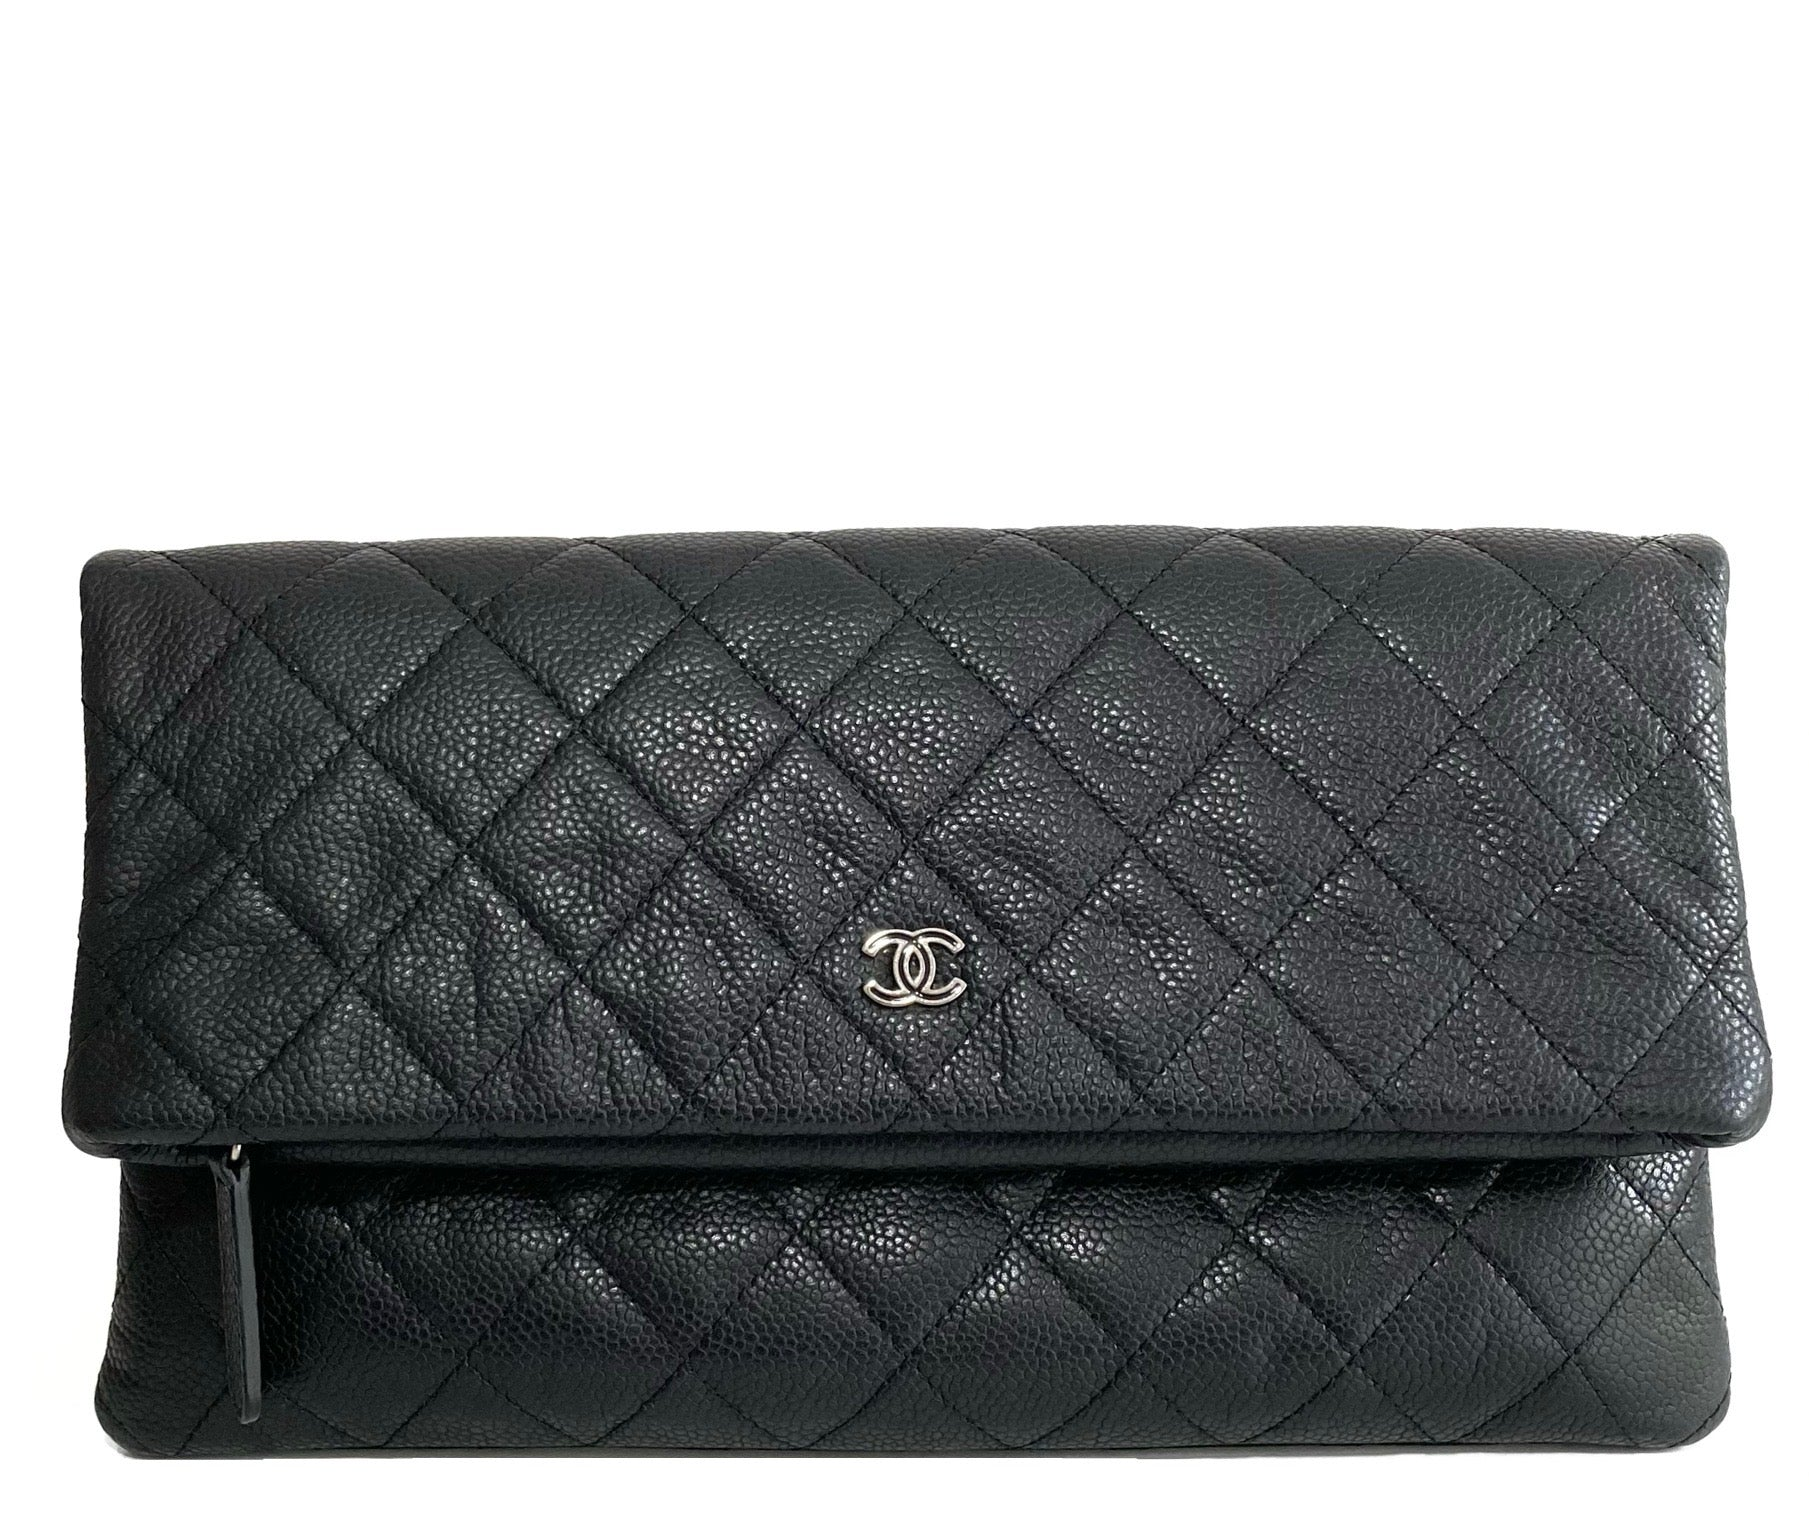 Caviar Quilted Flap Clutch